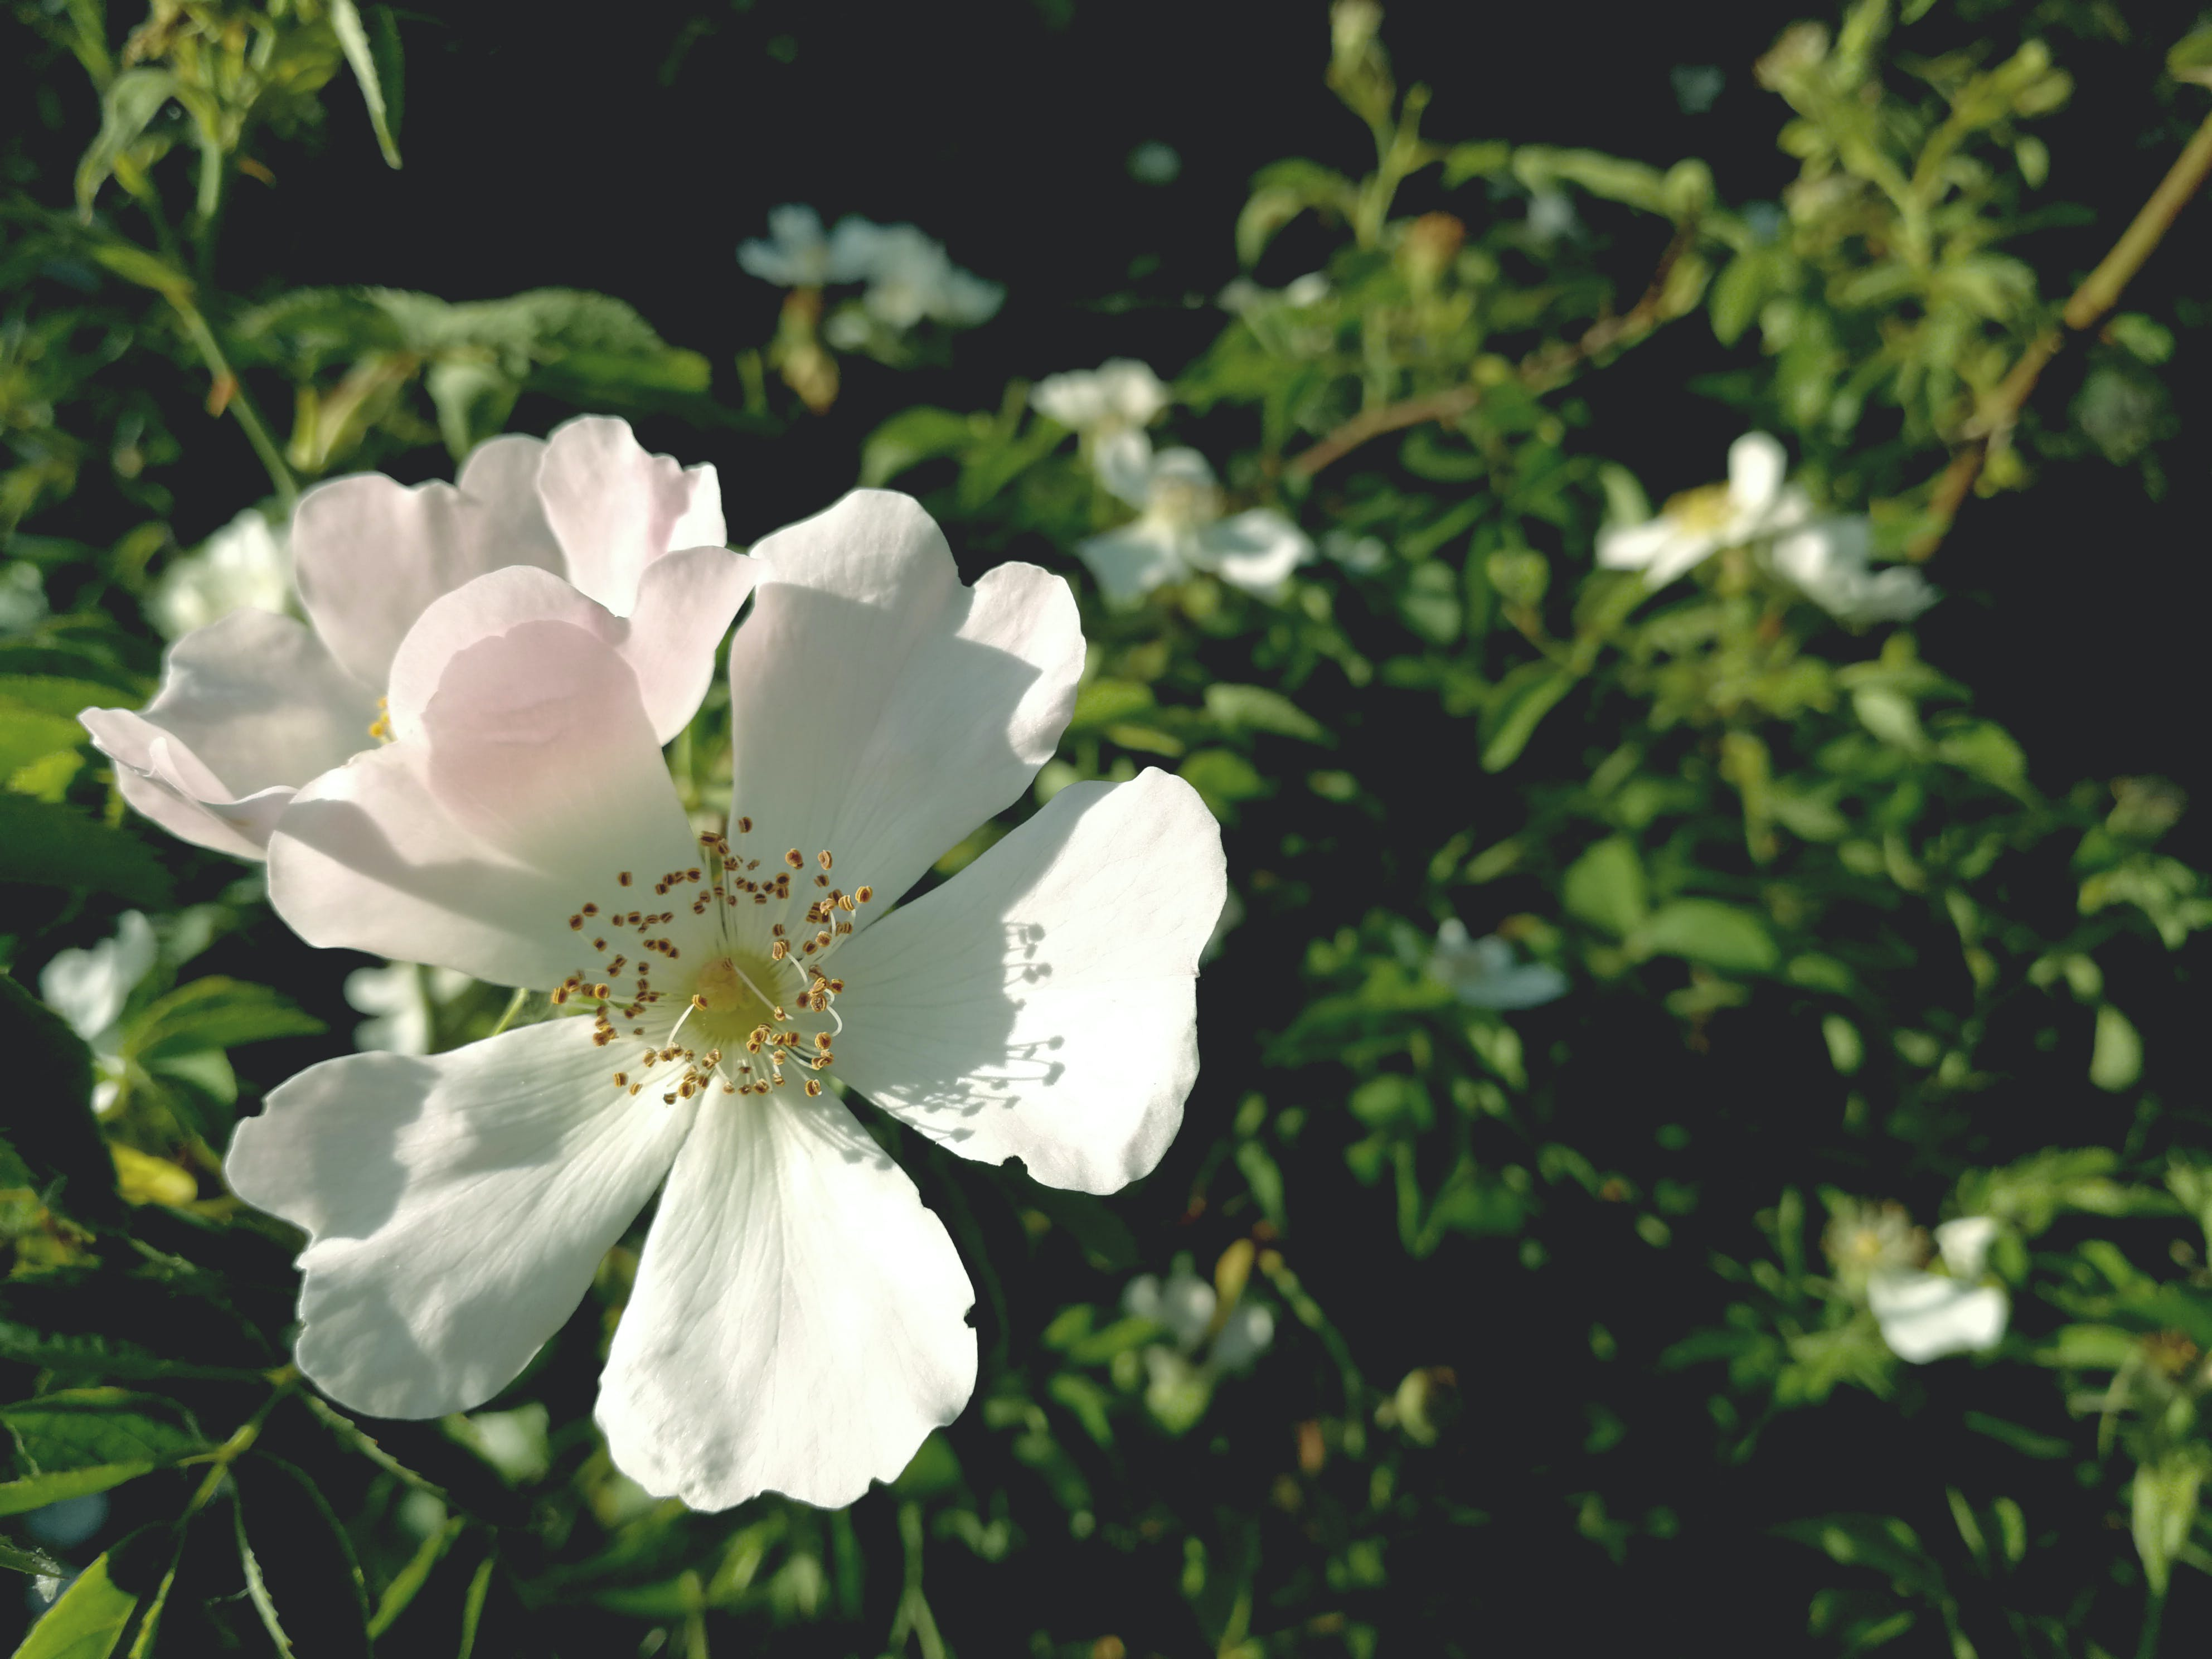 White Single-petaled Roses Closeup Photography at Daytime